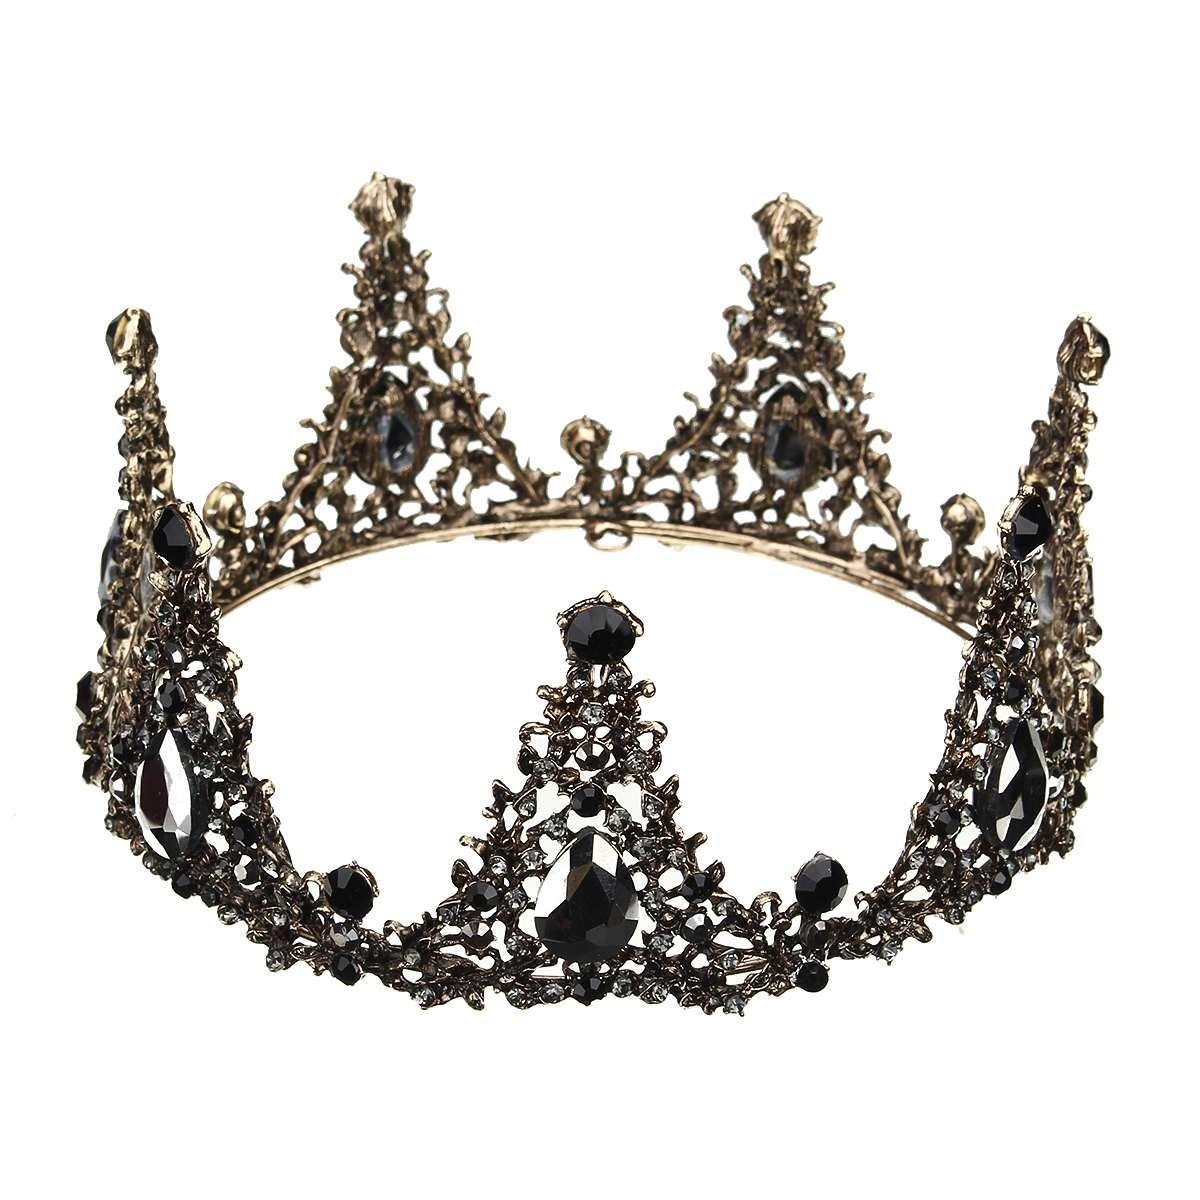 2019 Baroque Full Round Tiara Black Rhinestone Crystal Crowns Vintage Queen  Pageant Bridal Wedding Hair Jewelry Accessories Prom From Dushijewelry 864b0a4539cc